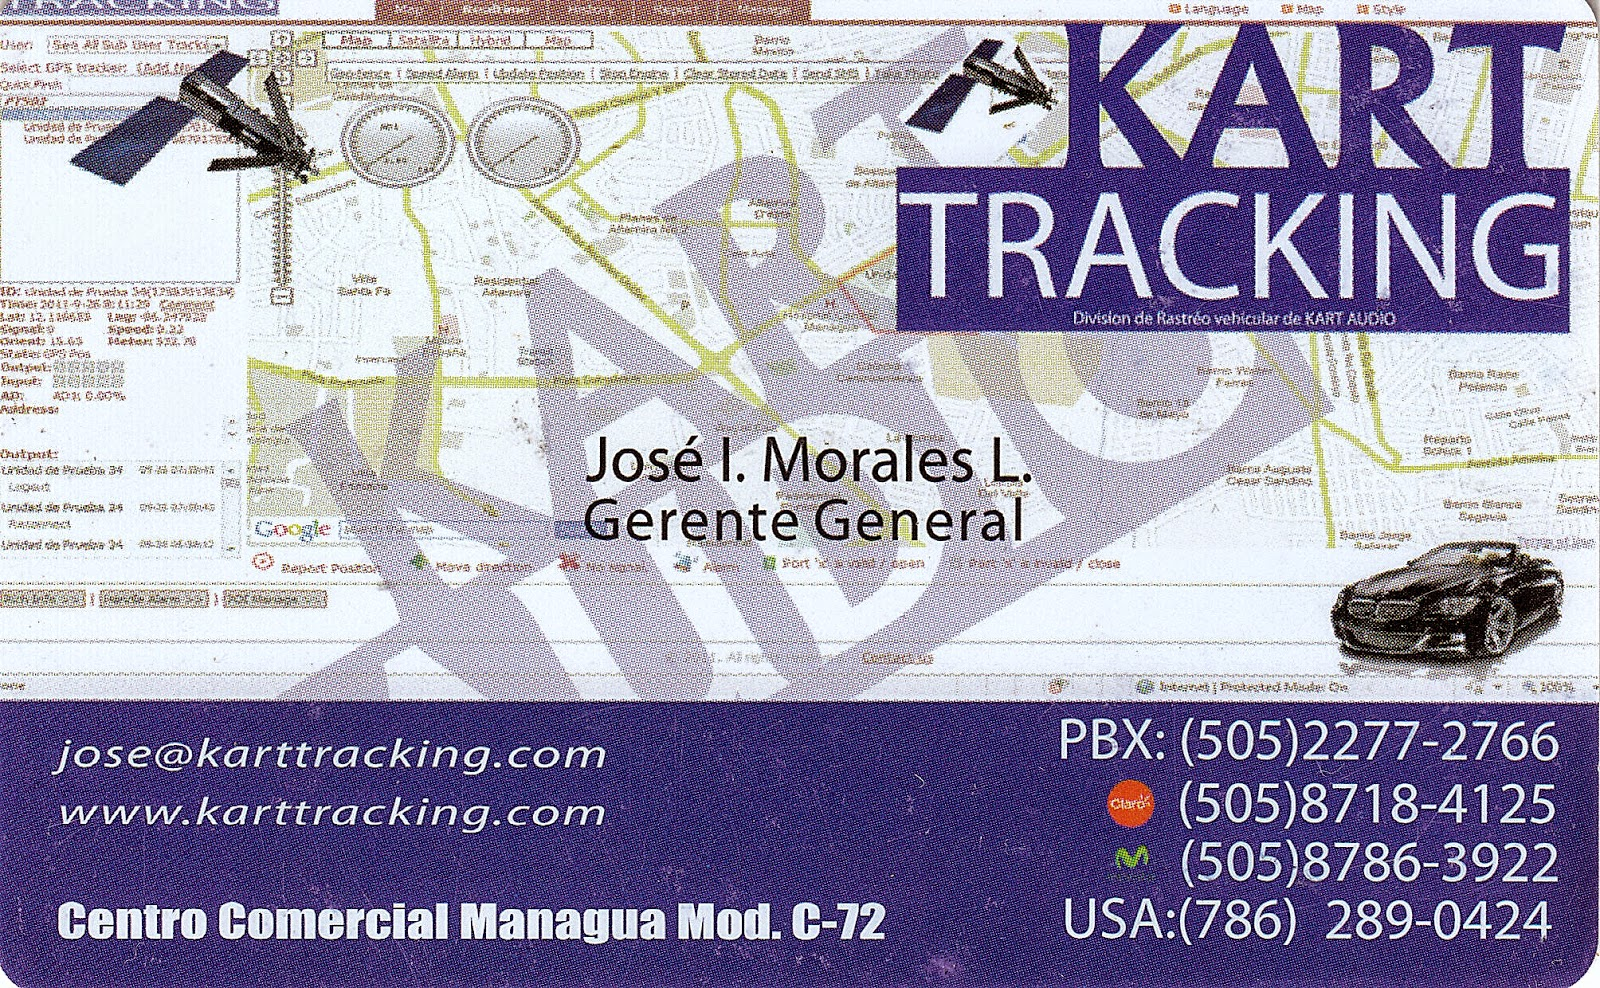 http://www.karttracking.com/login.php